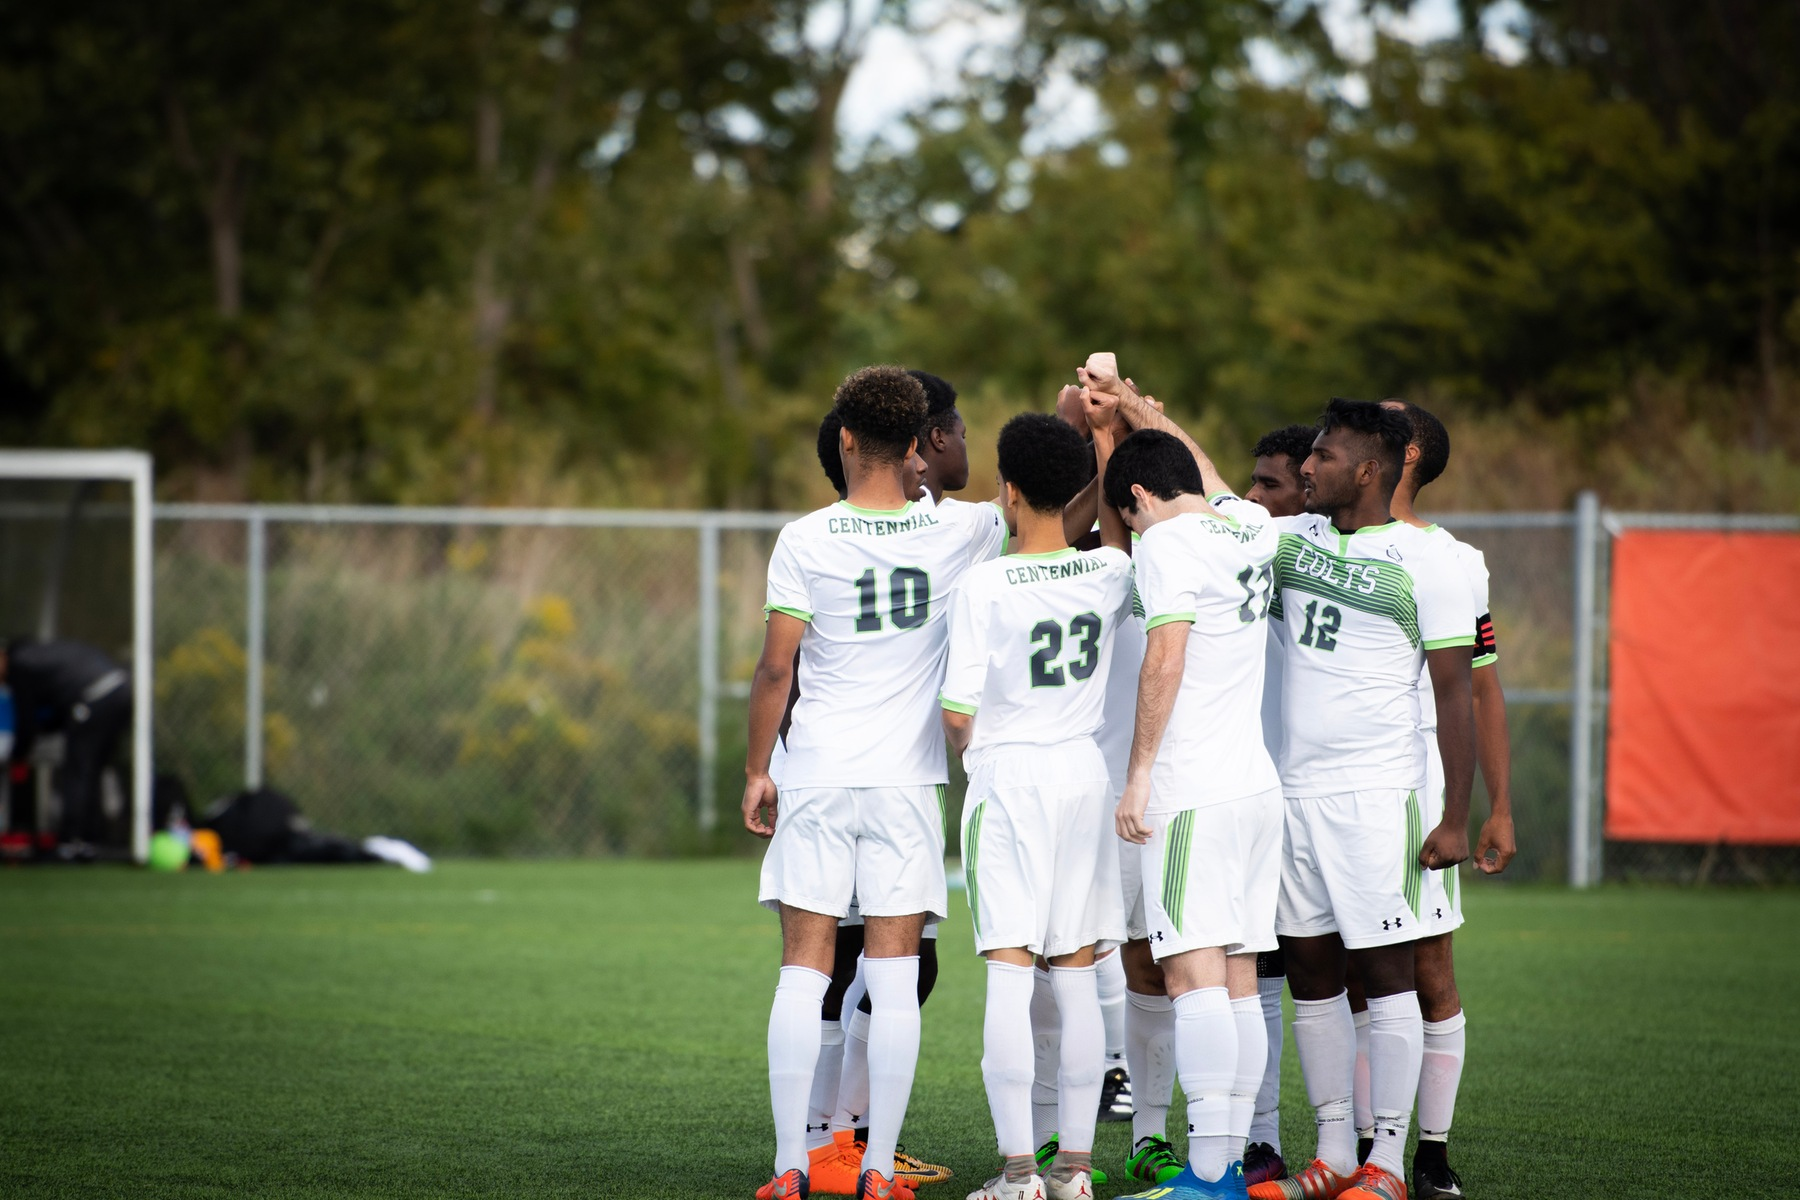 The team's camaraderie looks to propel them to a historic victory against the Sheridan Bruins tonight at home. (Via Dulay/Sports Information Officer)